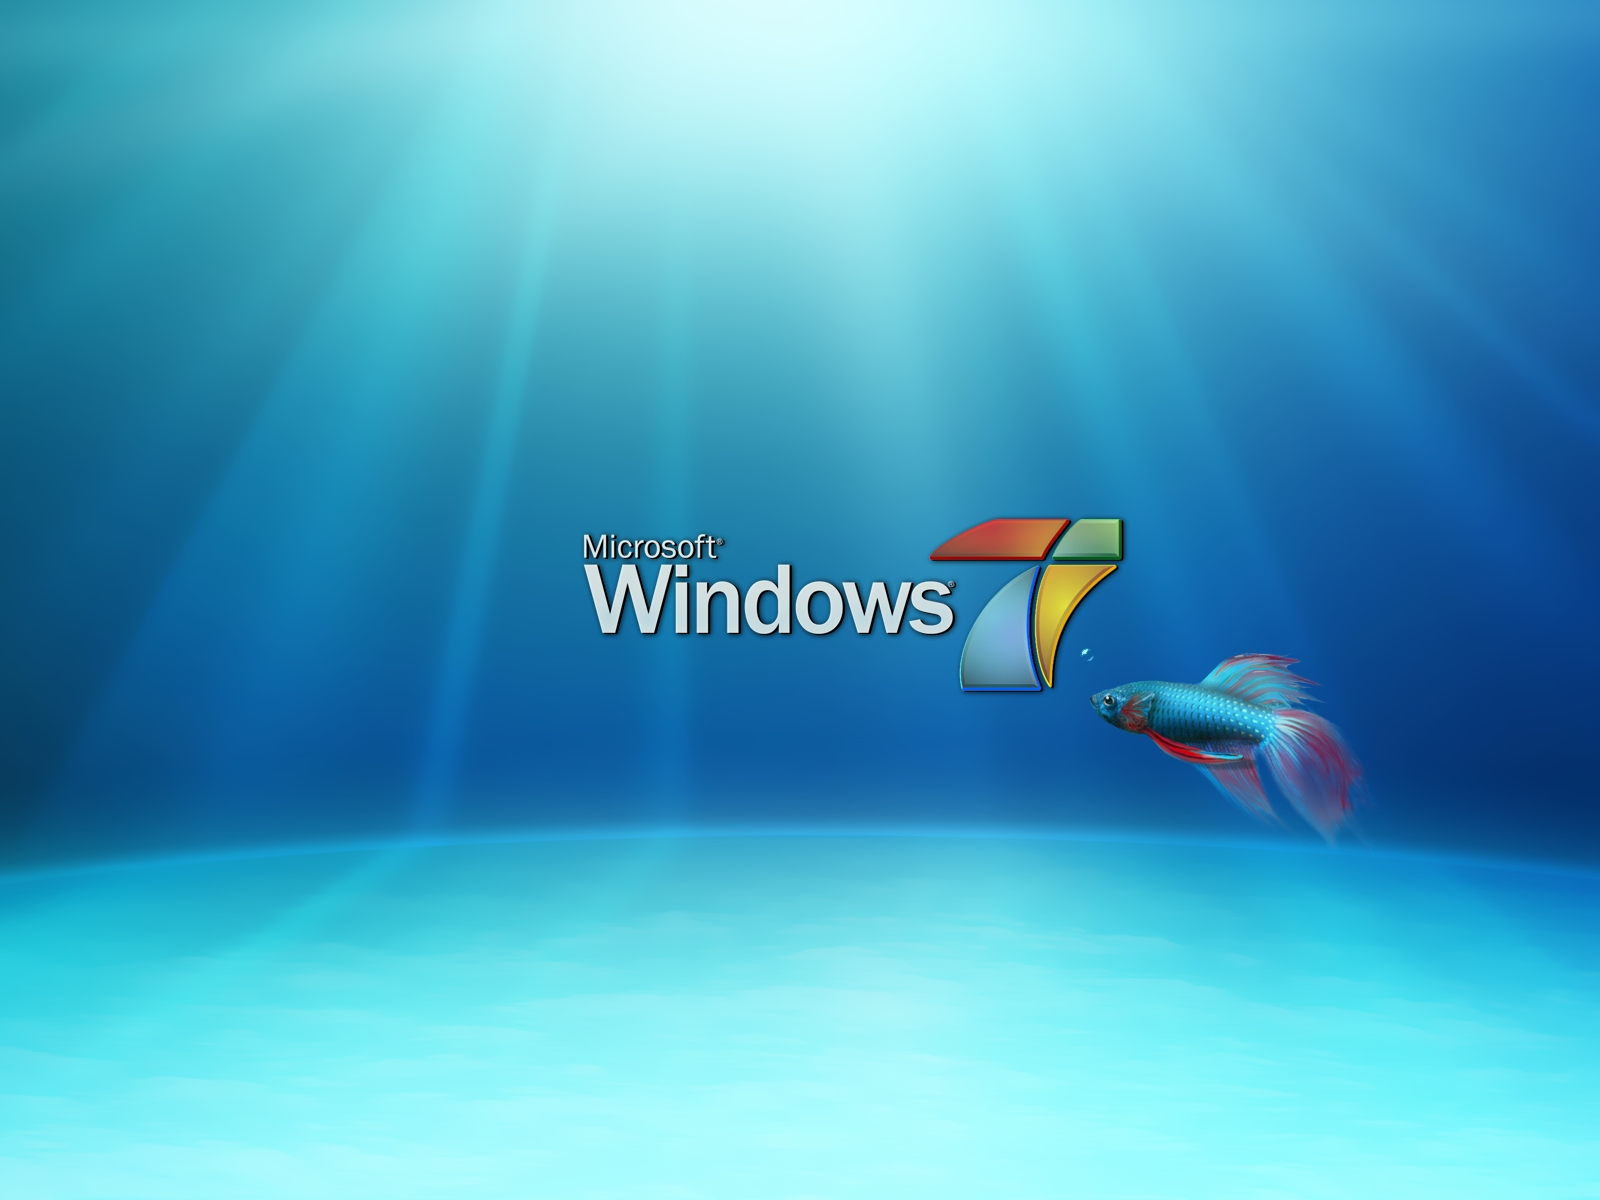 window 7 HD Wallpaper: HD Wallpapers of Windows 7 2